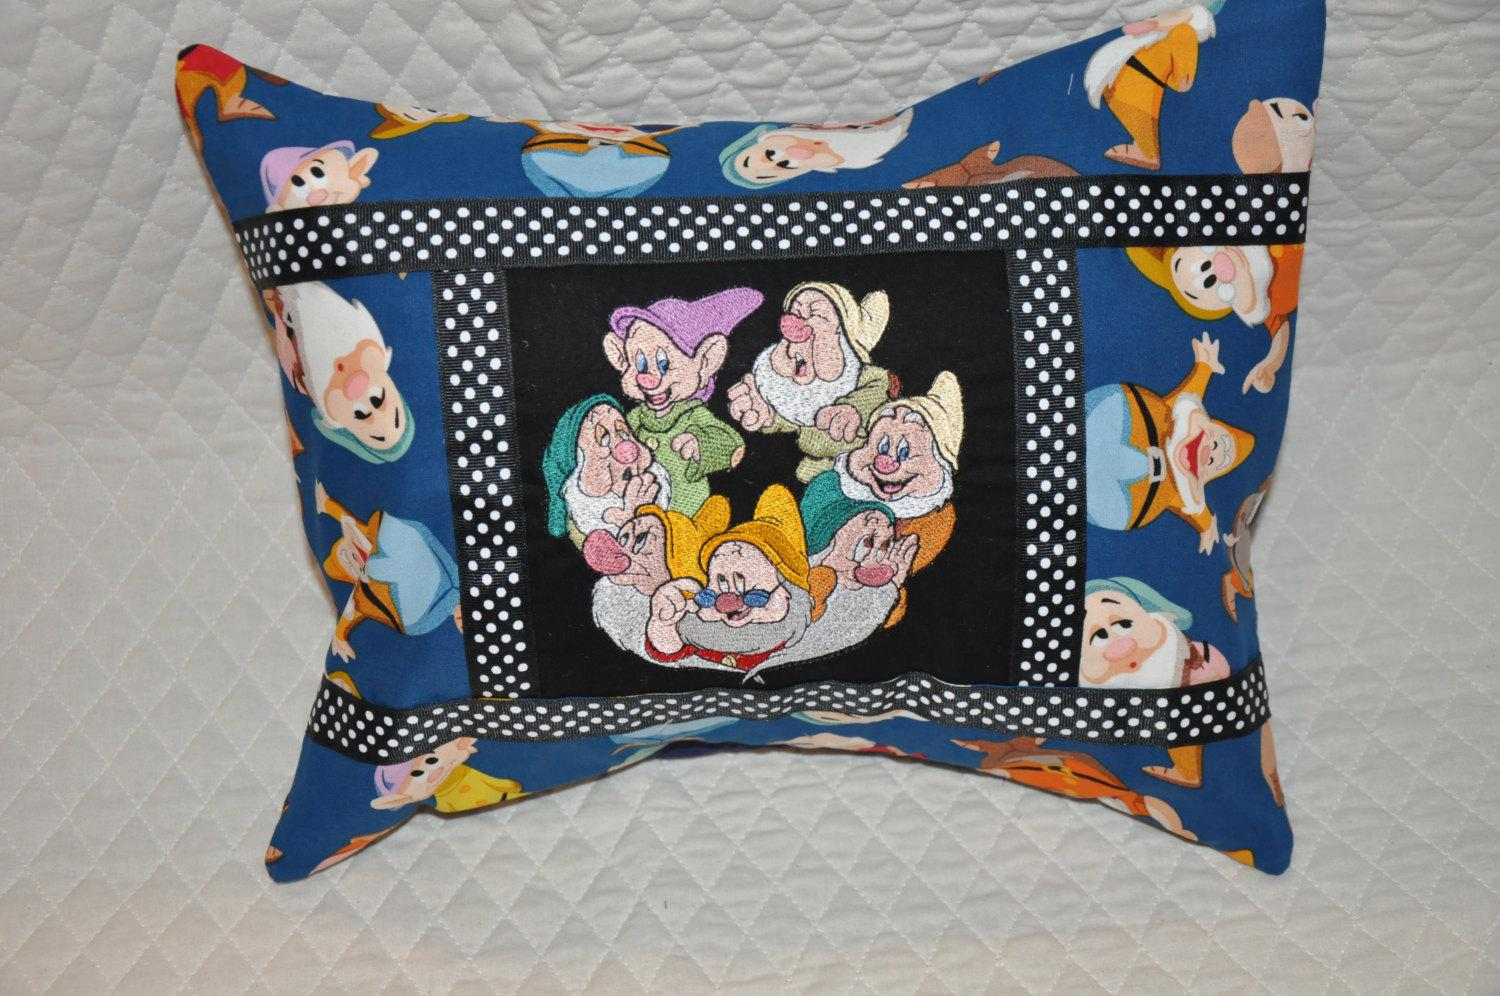 Pillow with Seven dwarfs embroidery design